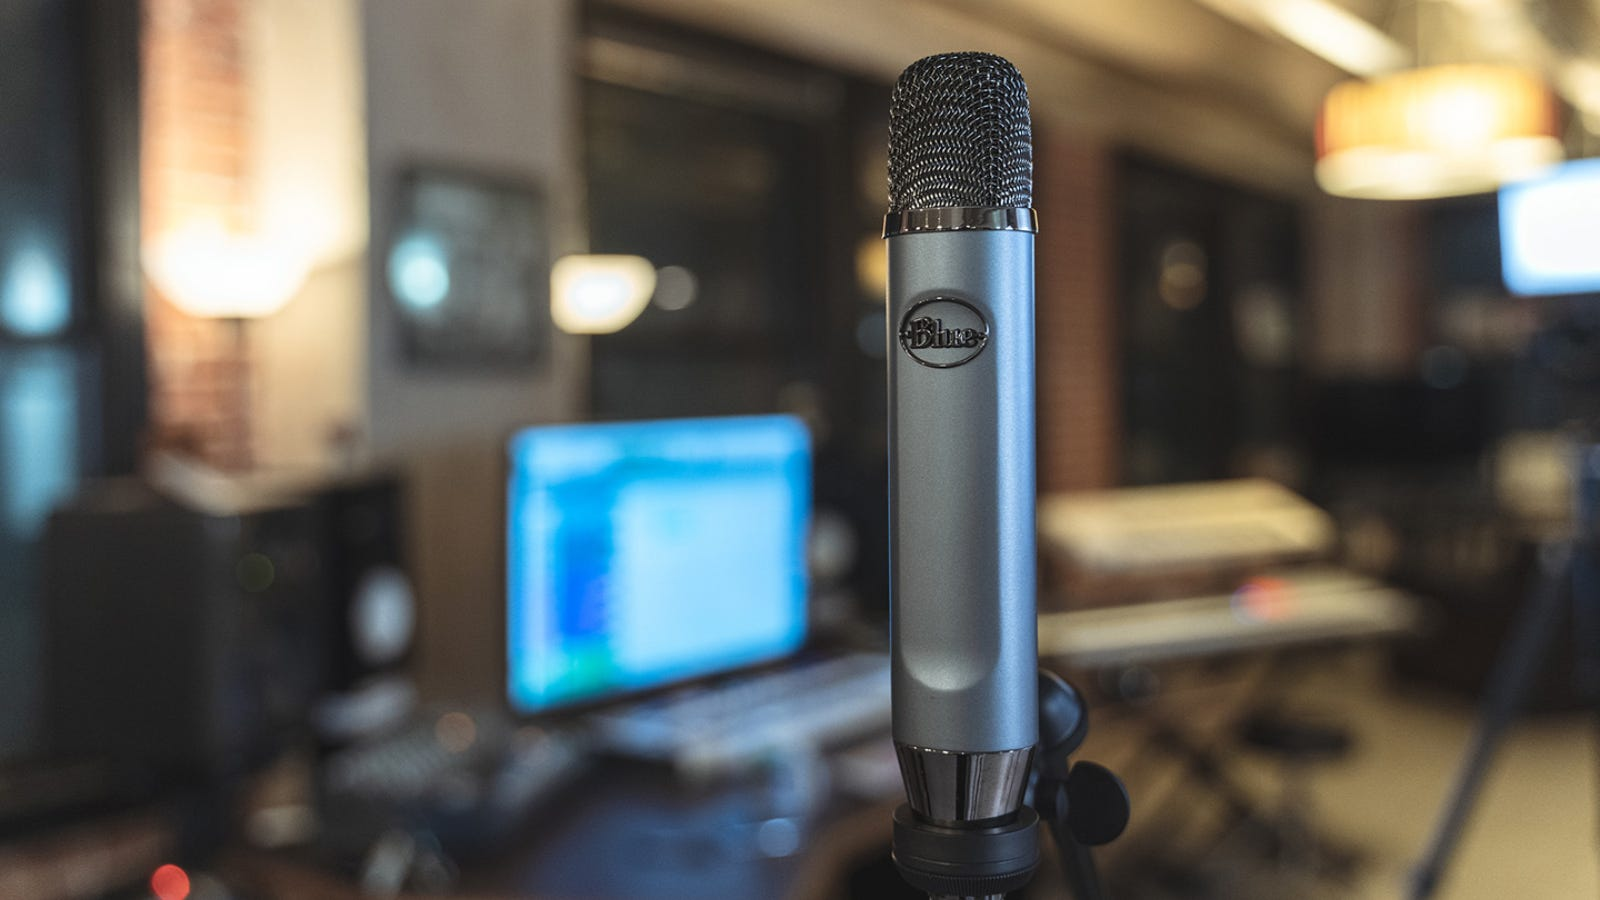 Blue Ember microphone against studio background